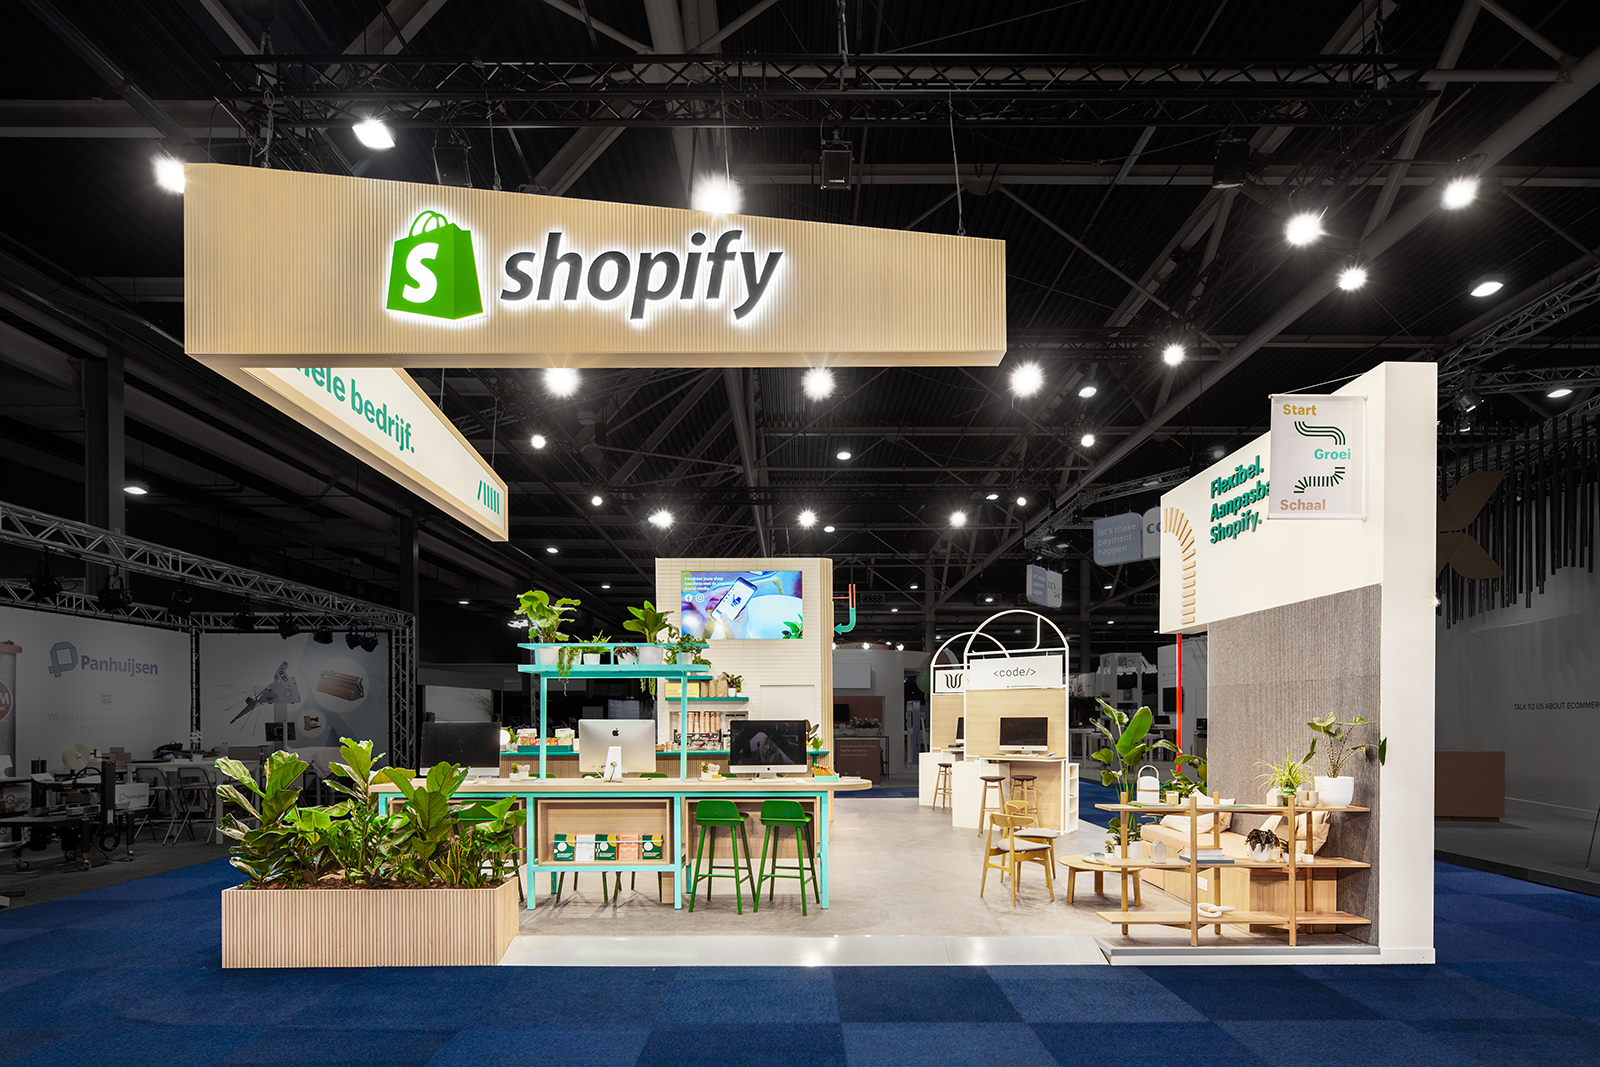 The Inside - Shopify - WWVD 2020 - Utrecht - StandPhotography #3343(lr)